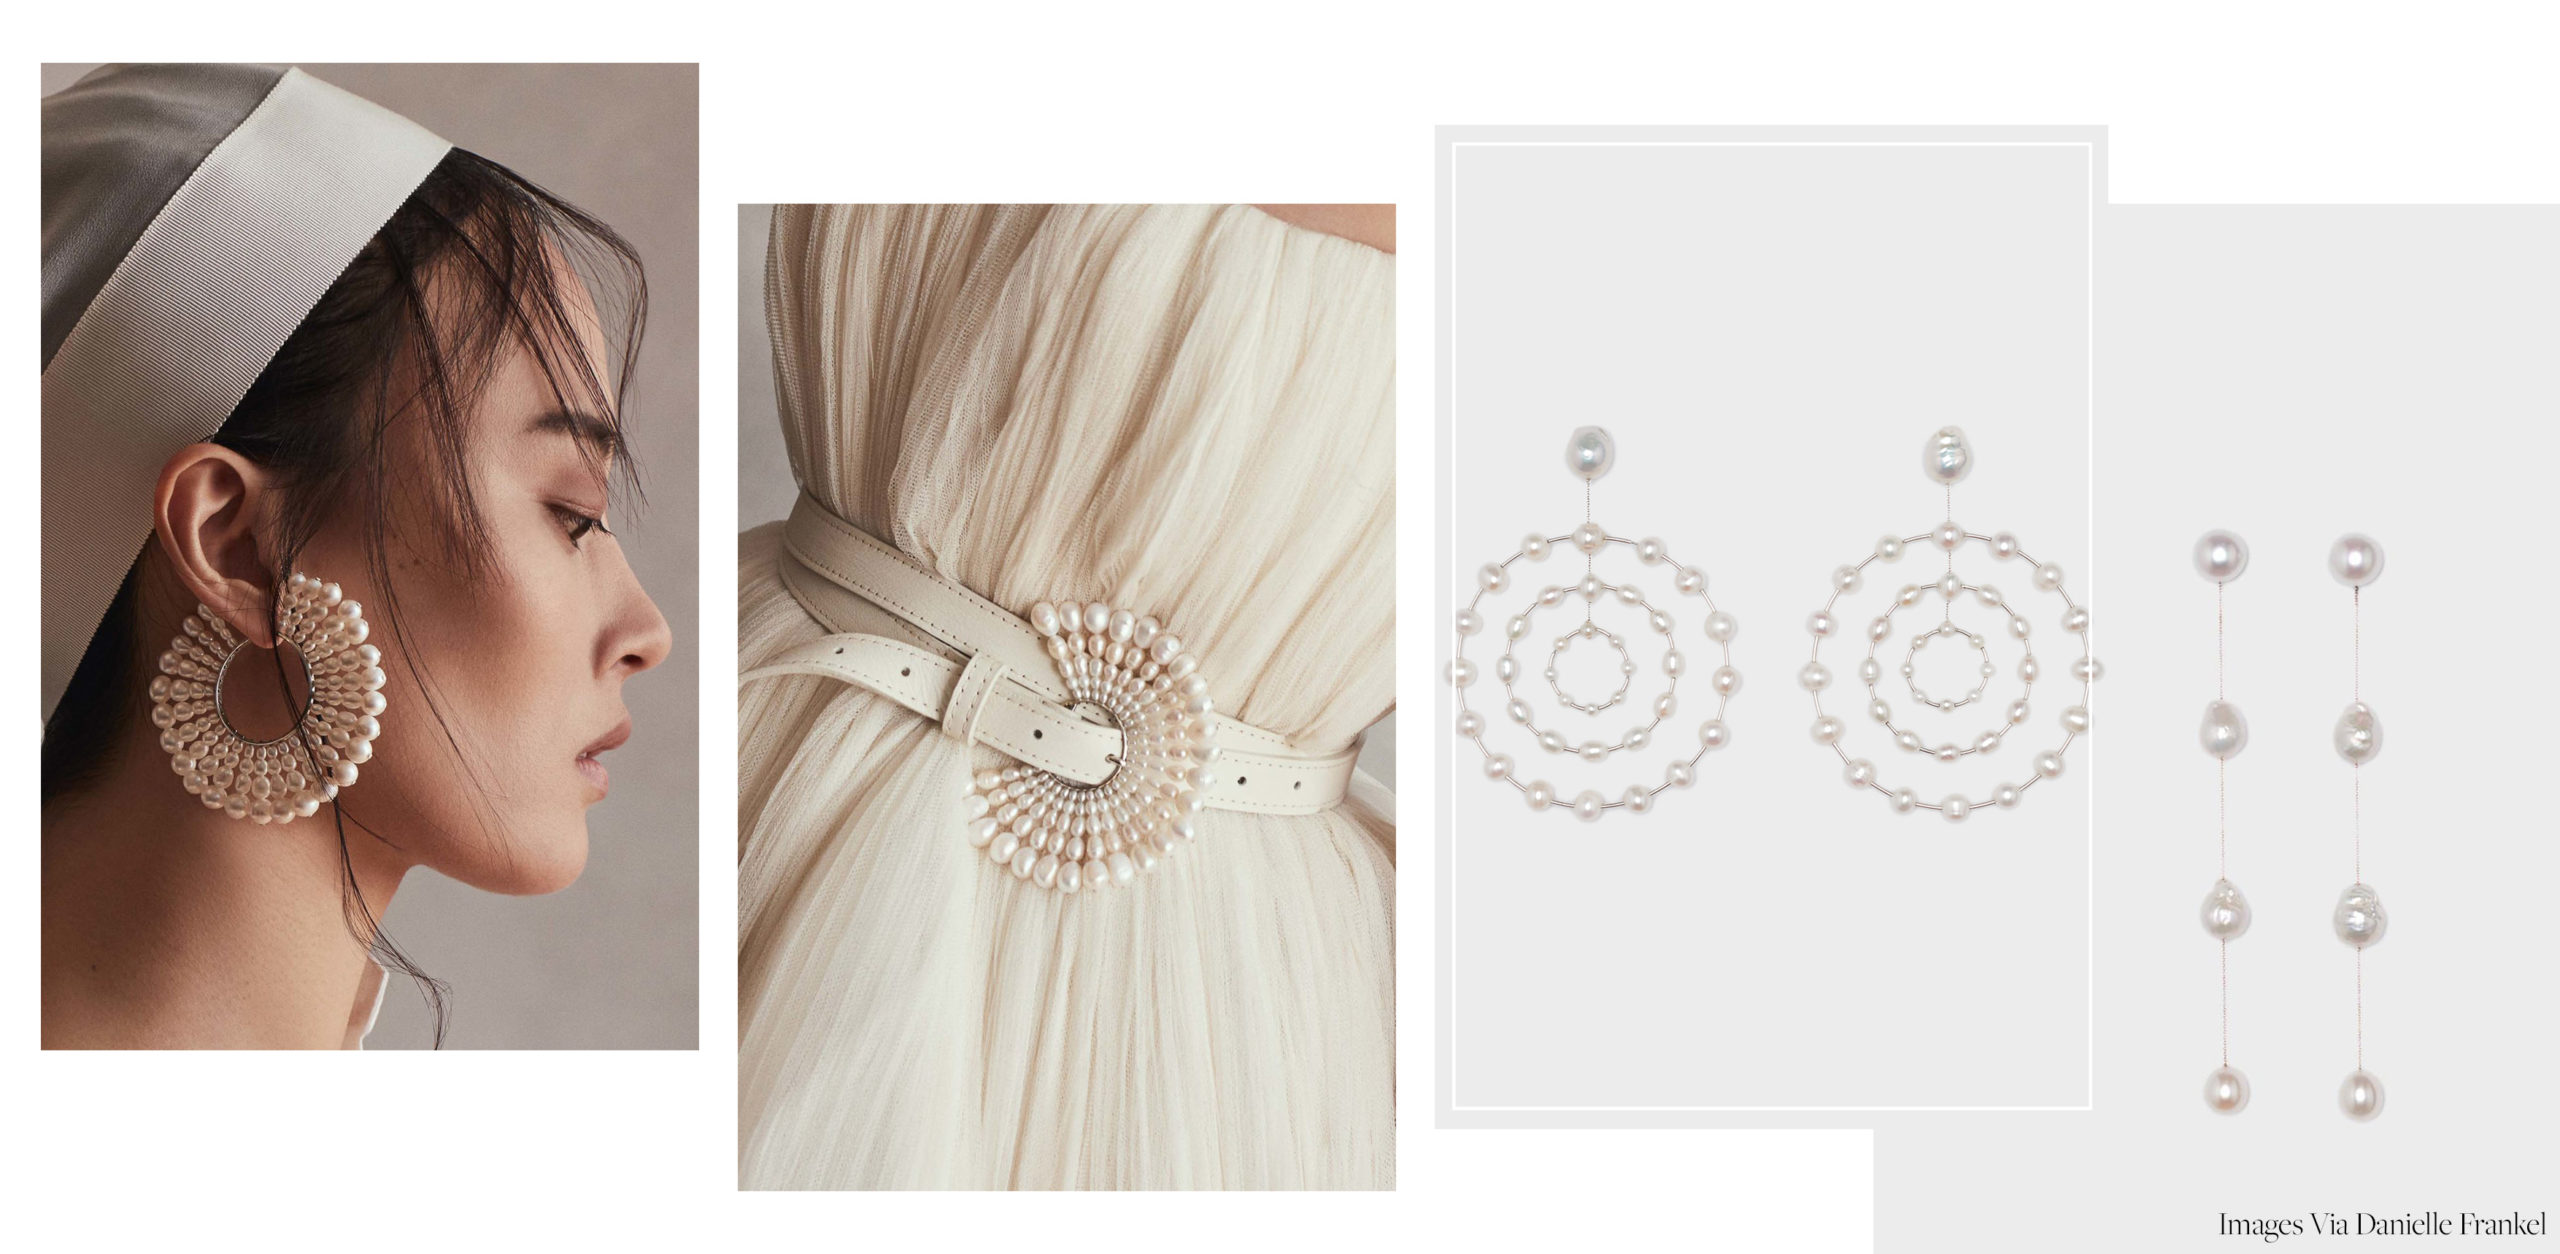 Danielle-frankel-wedding-accessories